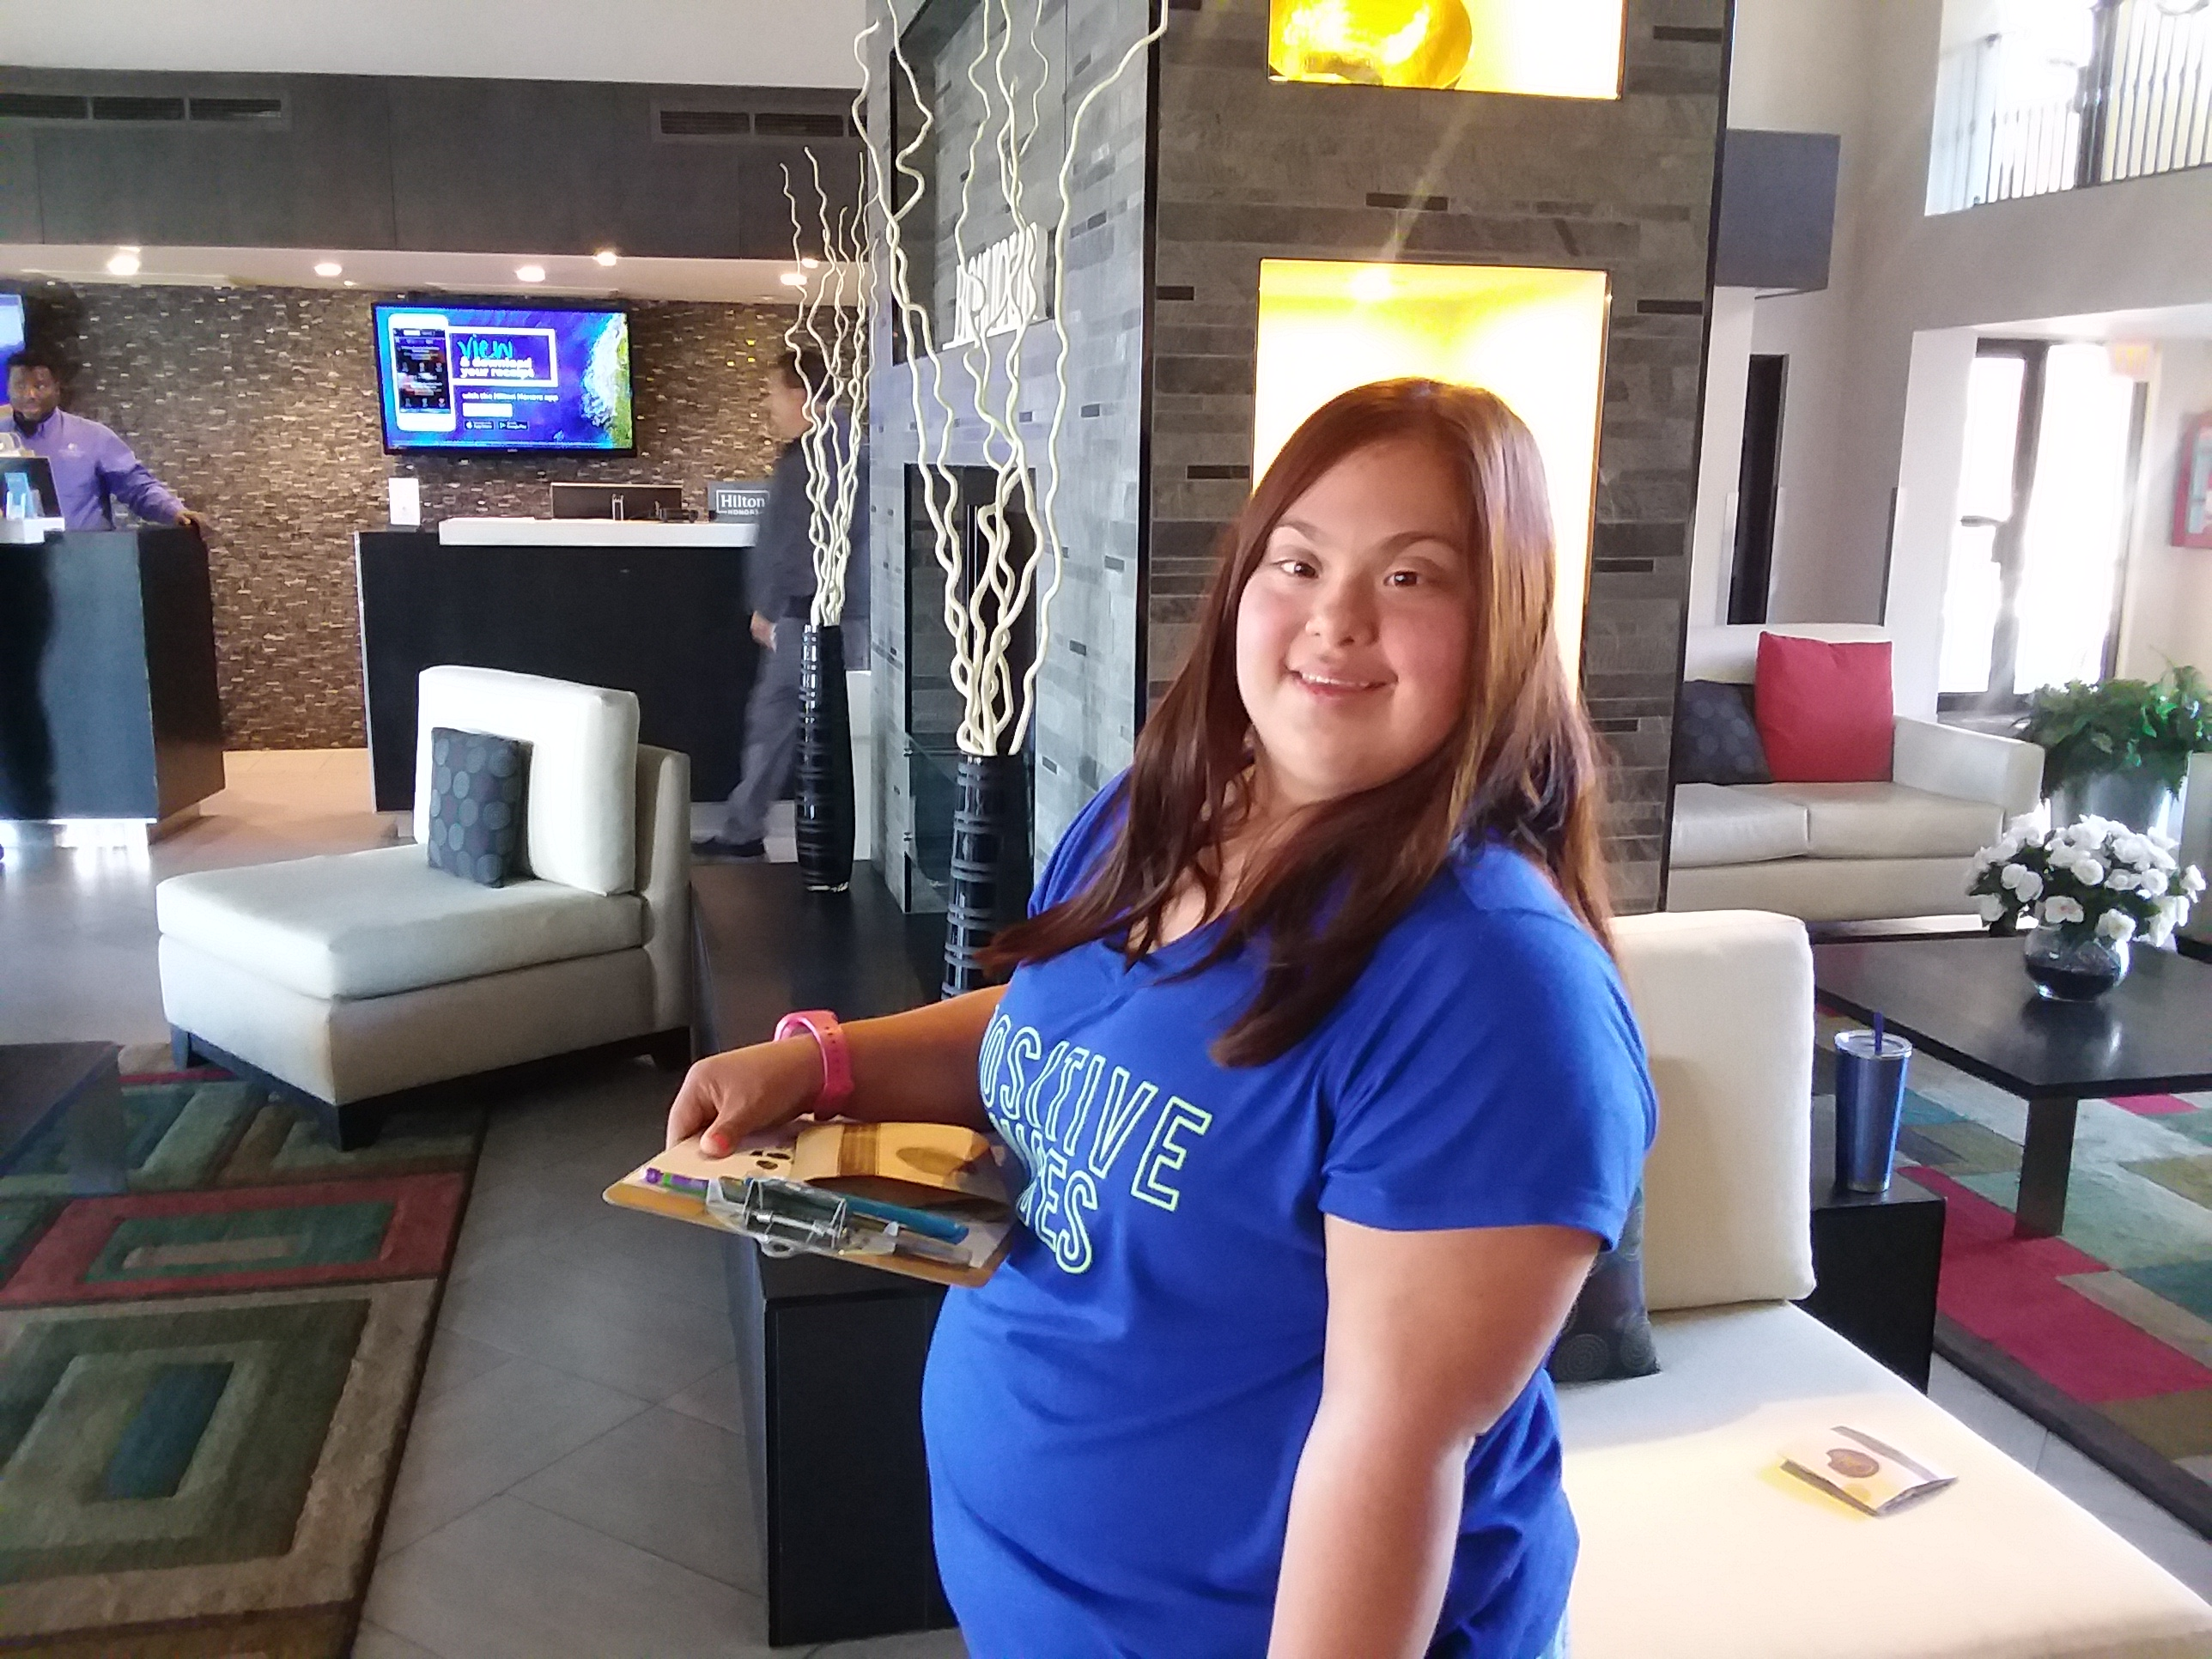 student smiling in hotel lobby